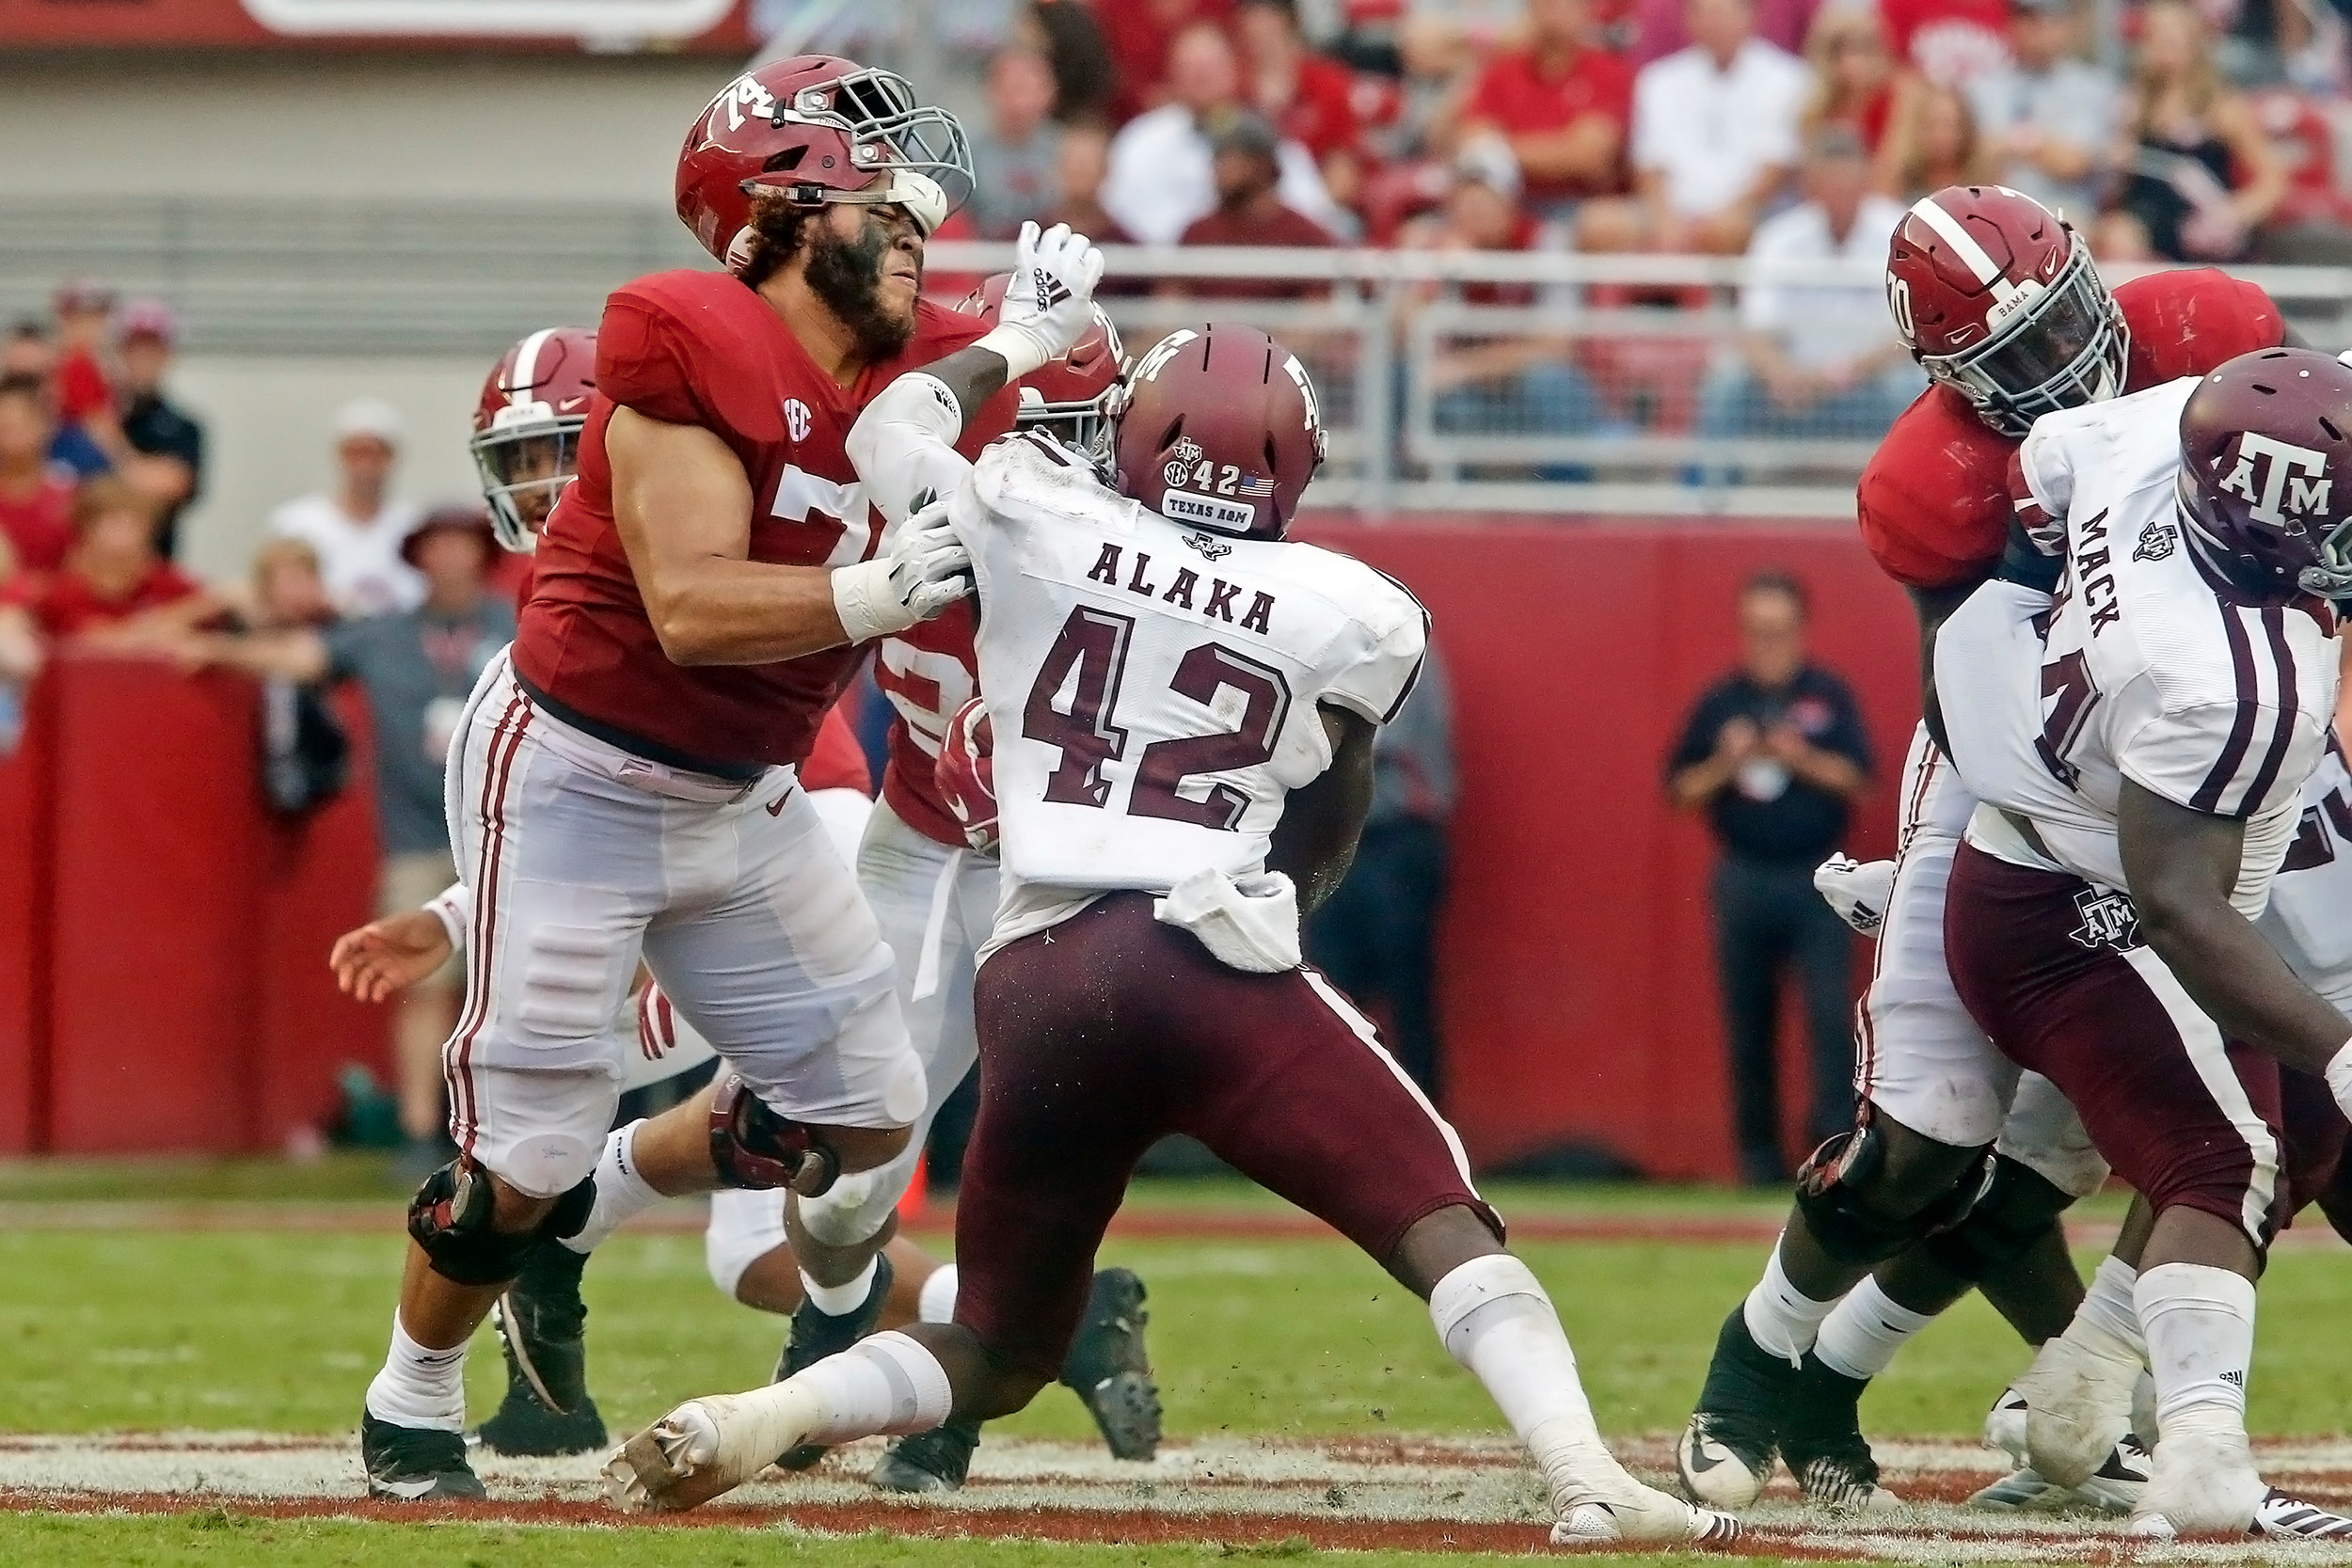 Texas A&M Aggies linebacker Otaro Alaka (42) gets away with some illegal hands to the face of Alabama Crimson Tide offensive lineman Jedrick Wills Jr. (74) during the game with against the Texas A&M Aggies at Bryant-Denny Stadium.  Jason Clark / Daily Mountain Eagle